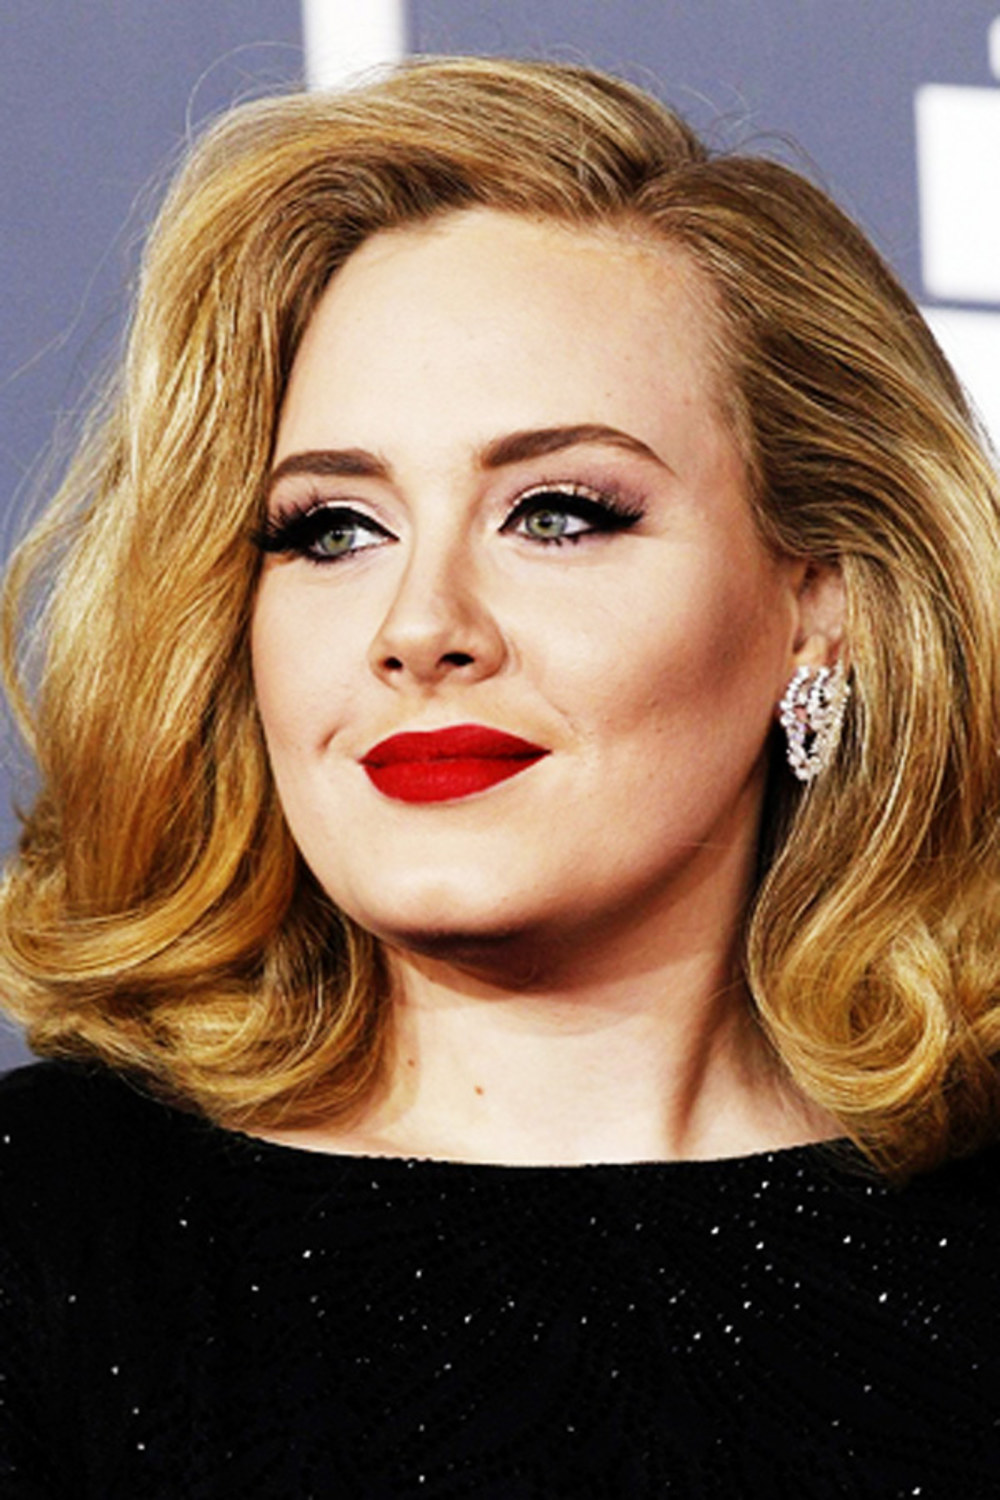 Best 33 Adele HD Wallpapers Images And Pictures Free Download